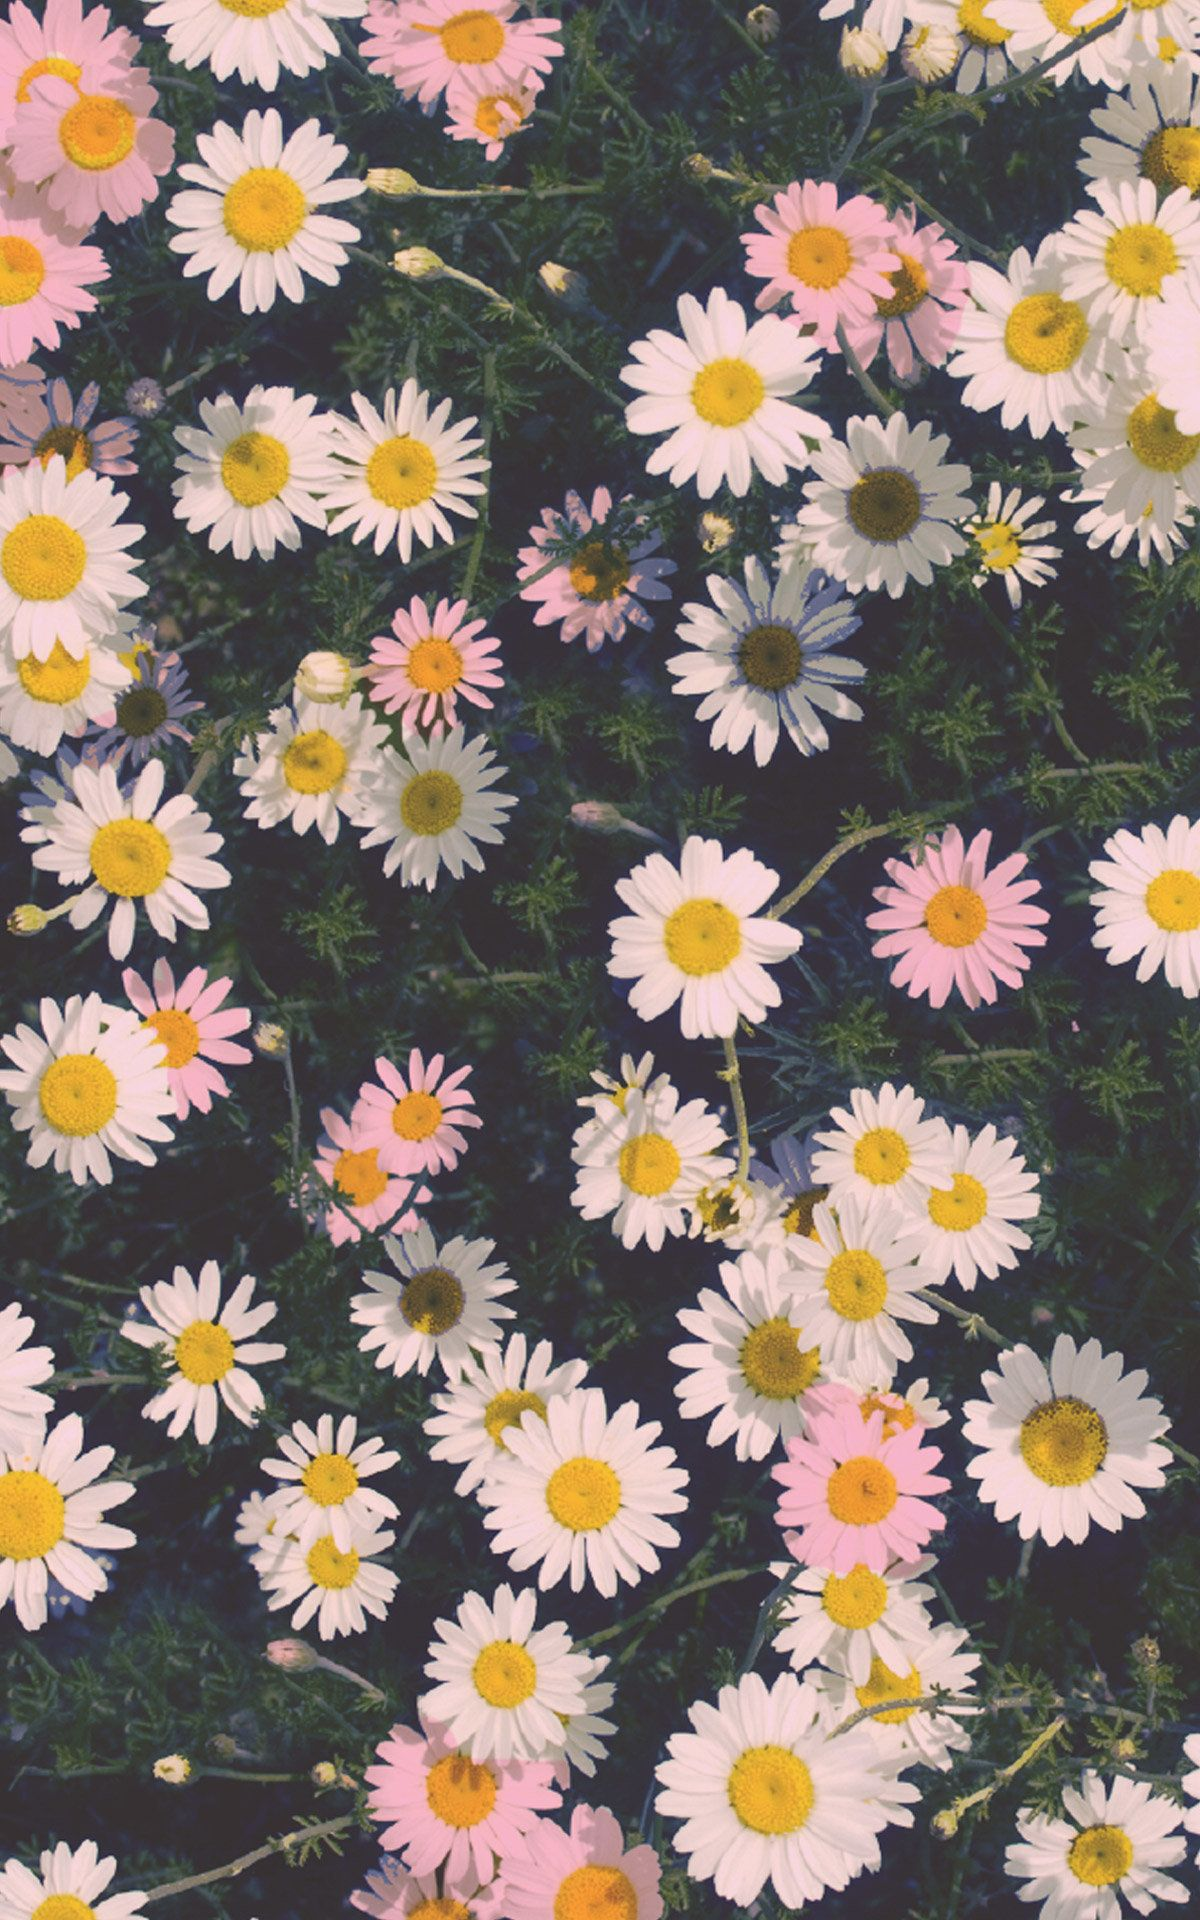 Floral Iphone Wallpapers Top Free Floral Iphone Backgrounds